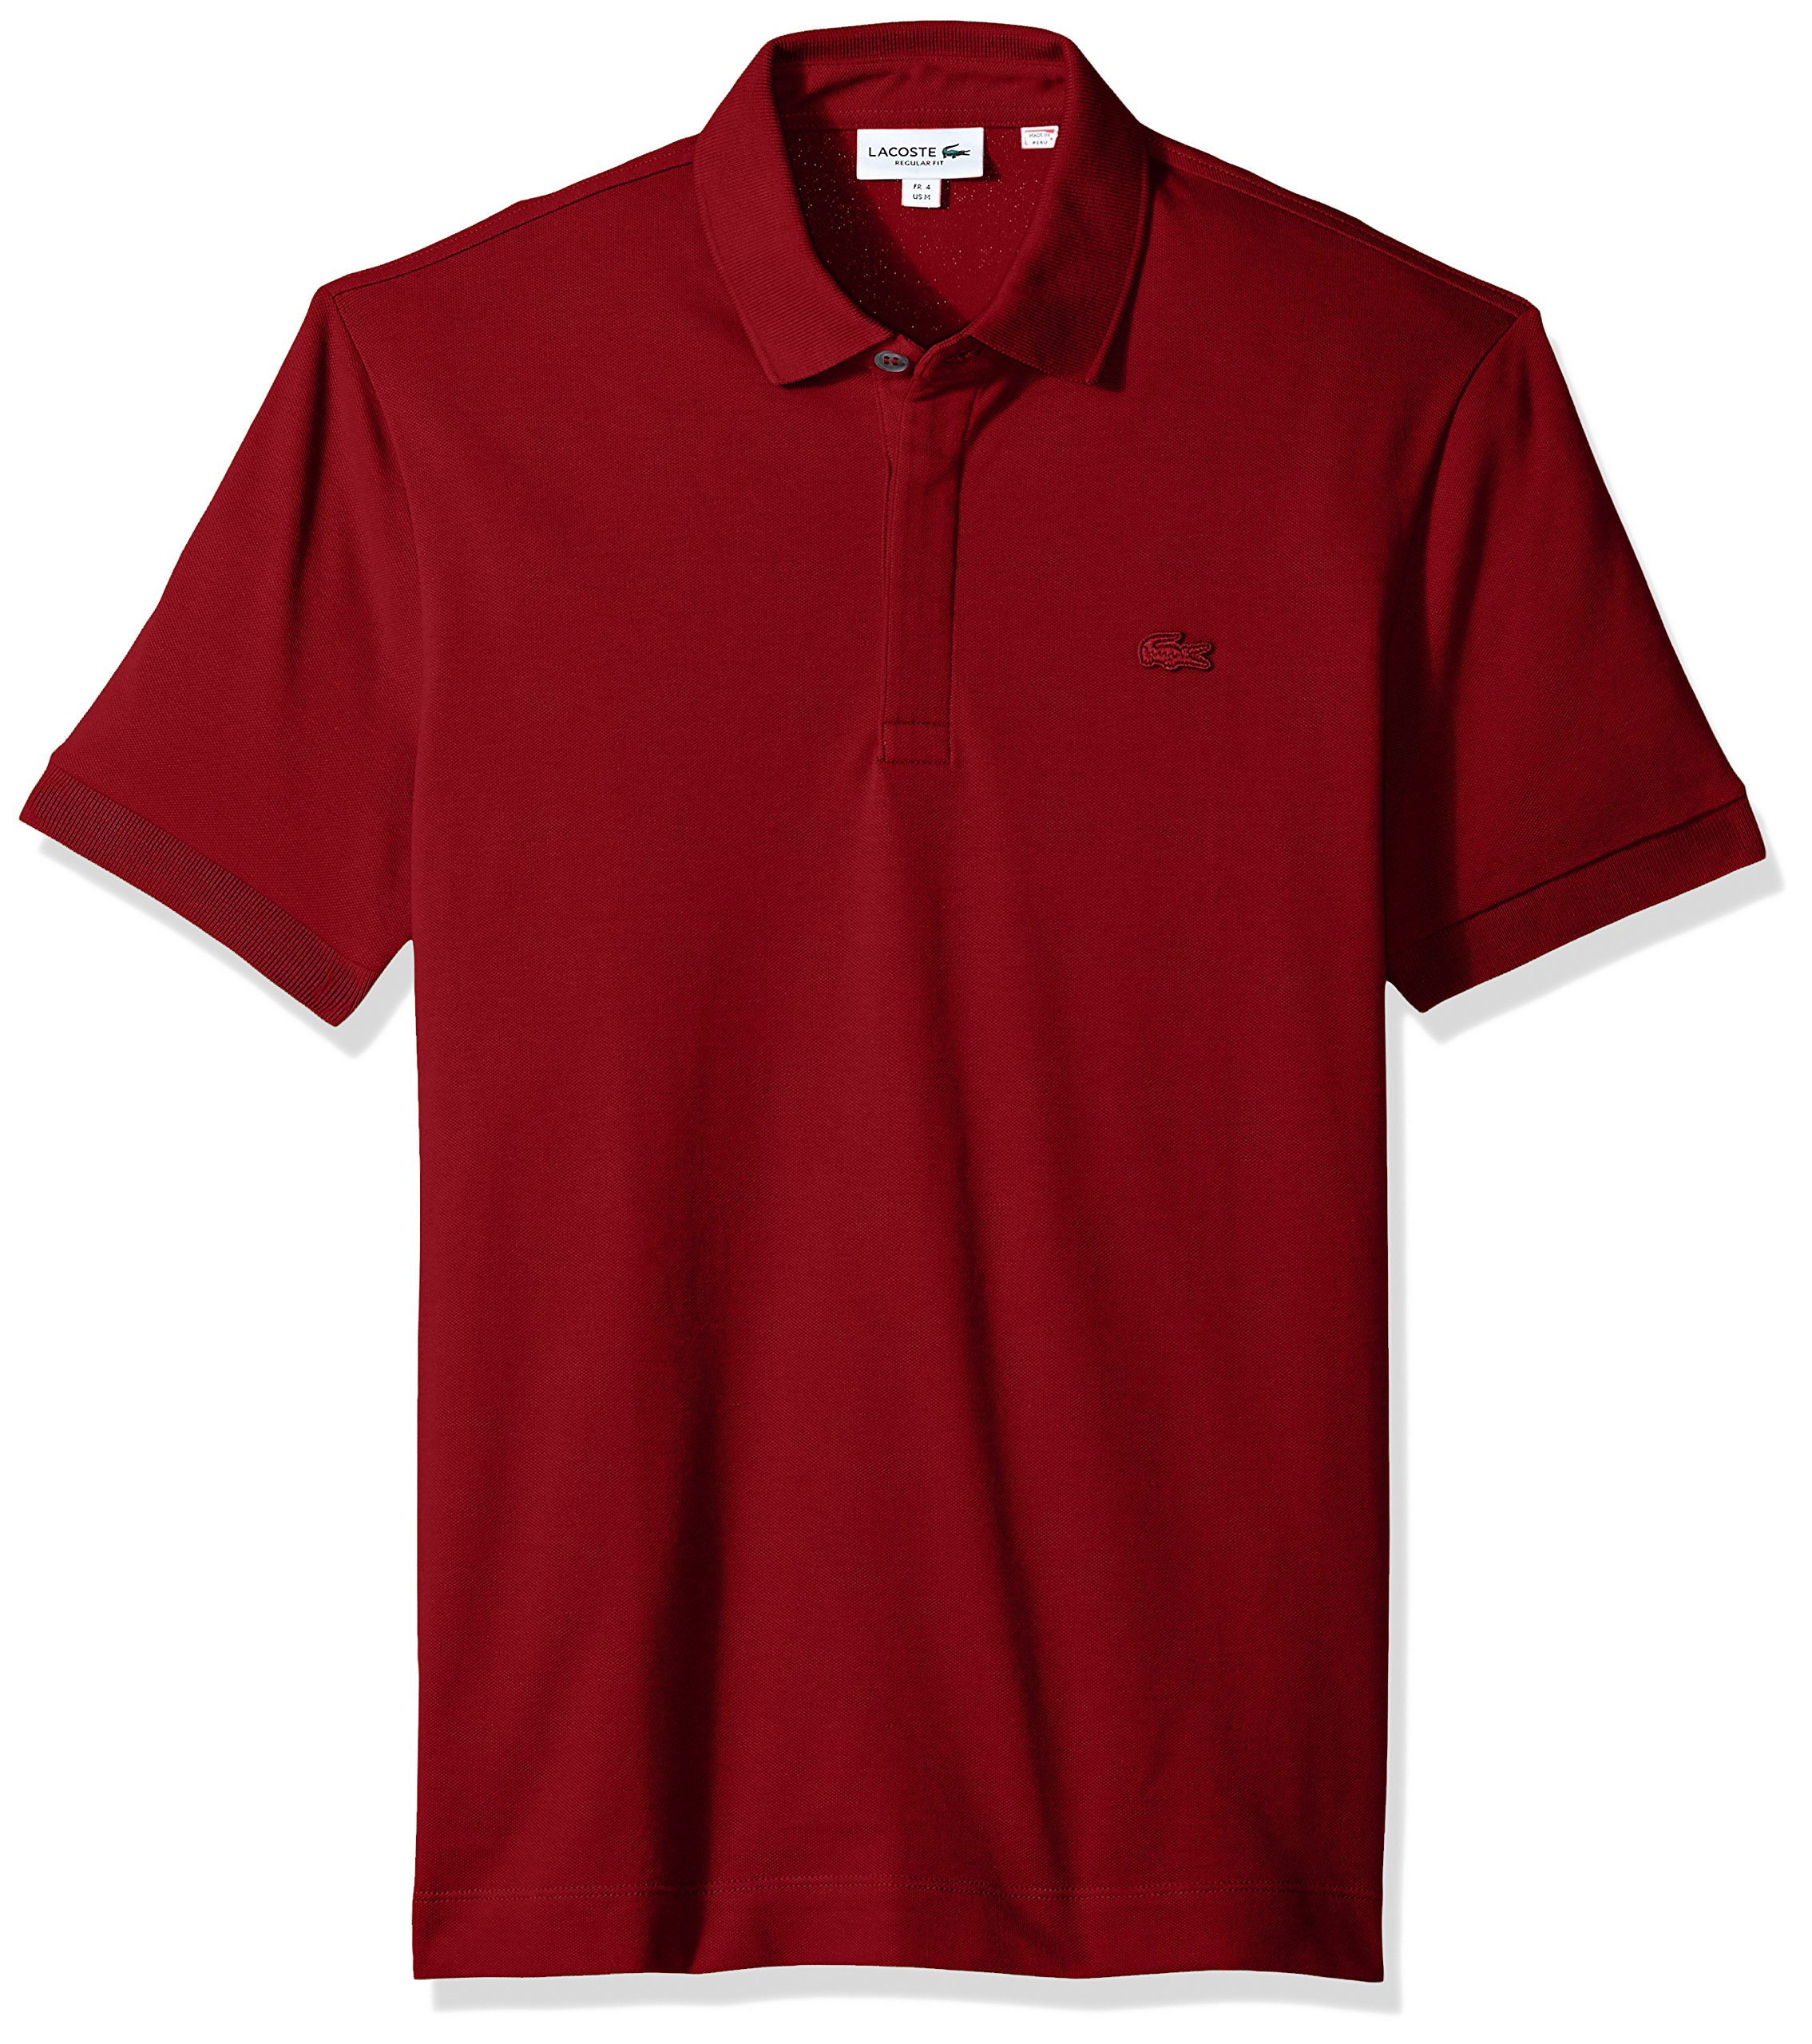 Purchase > lacoste t shirt price philippines, Up to 76% OFF